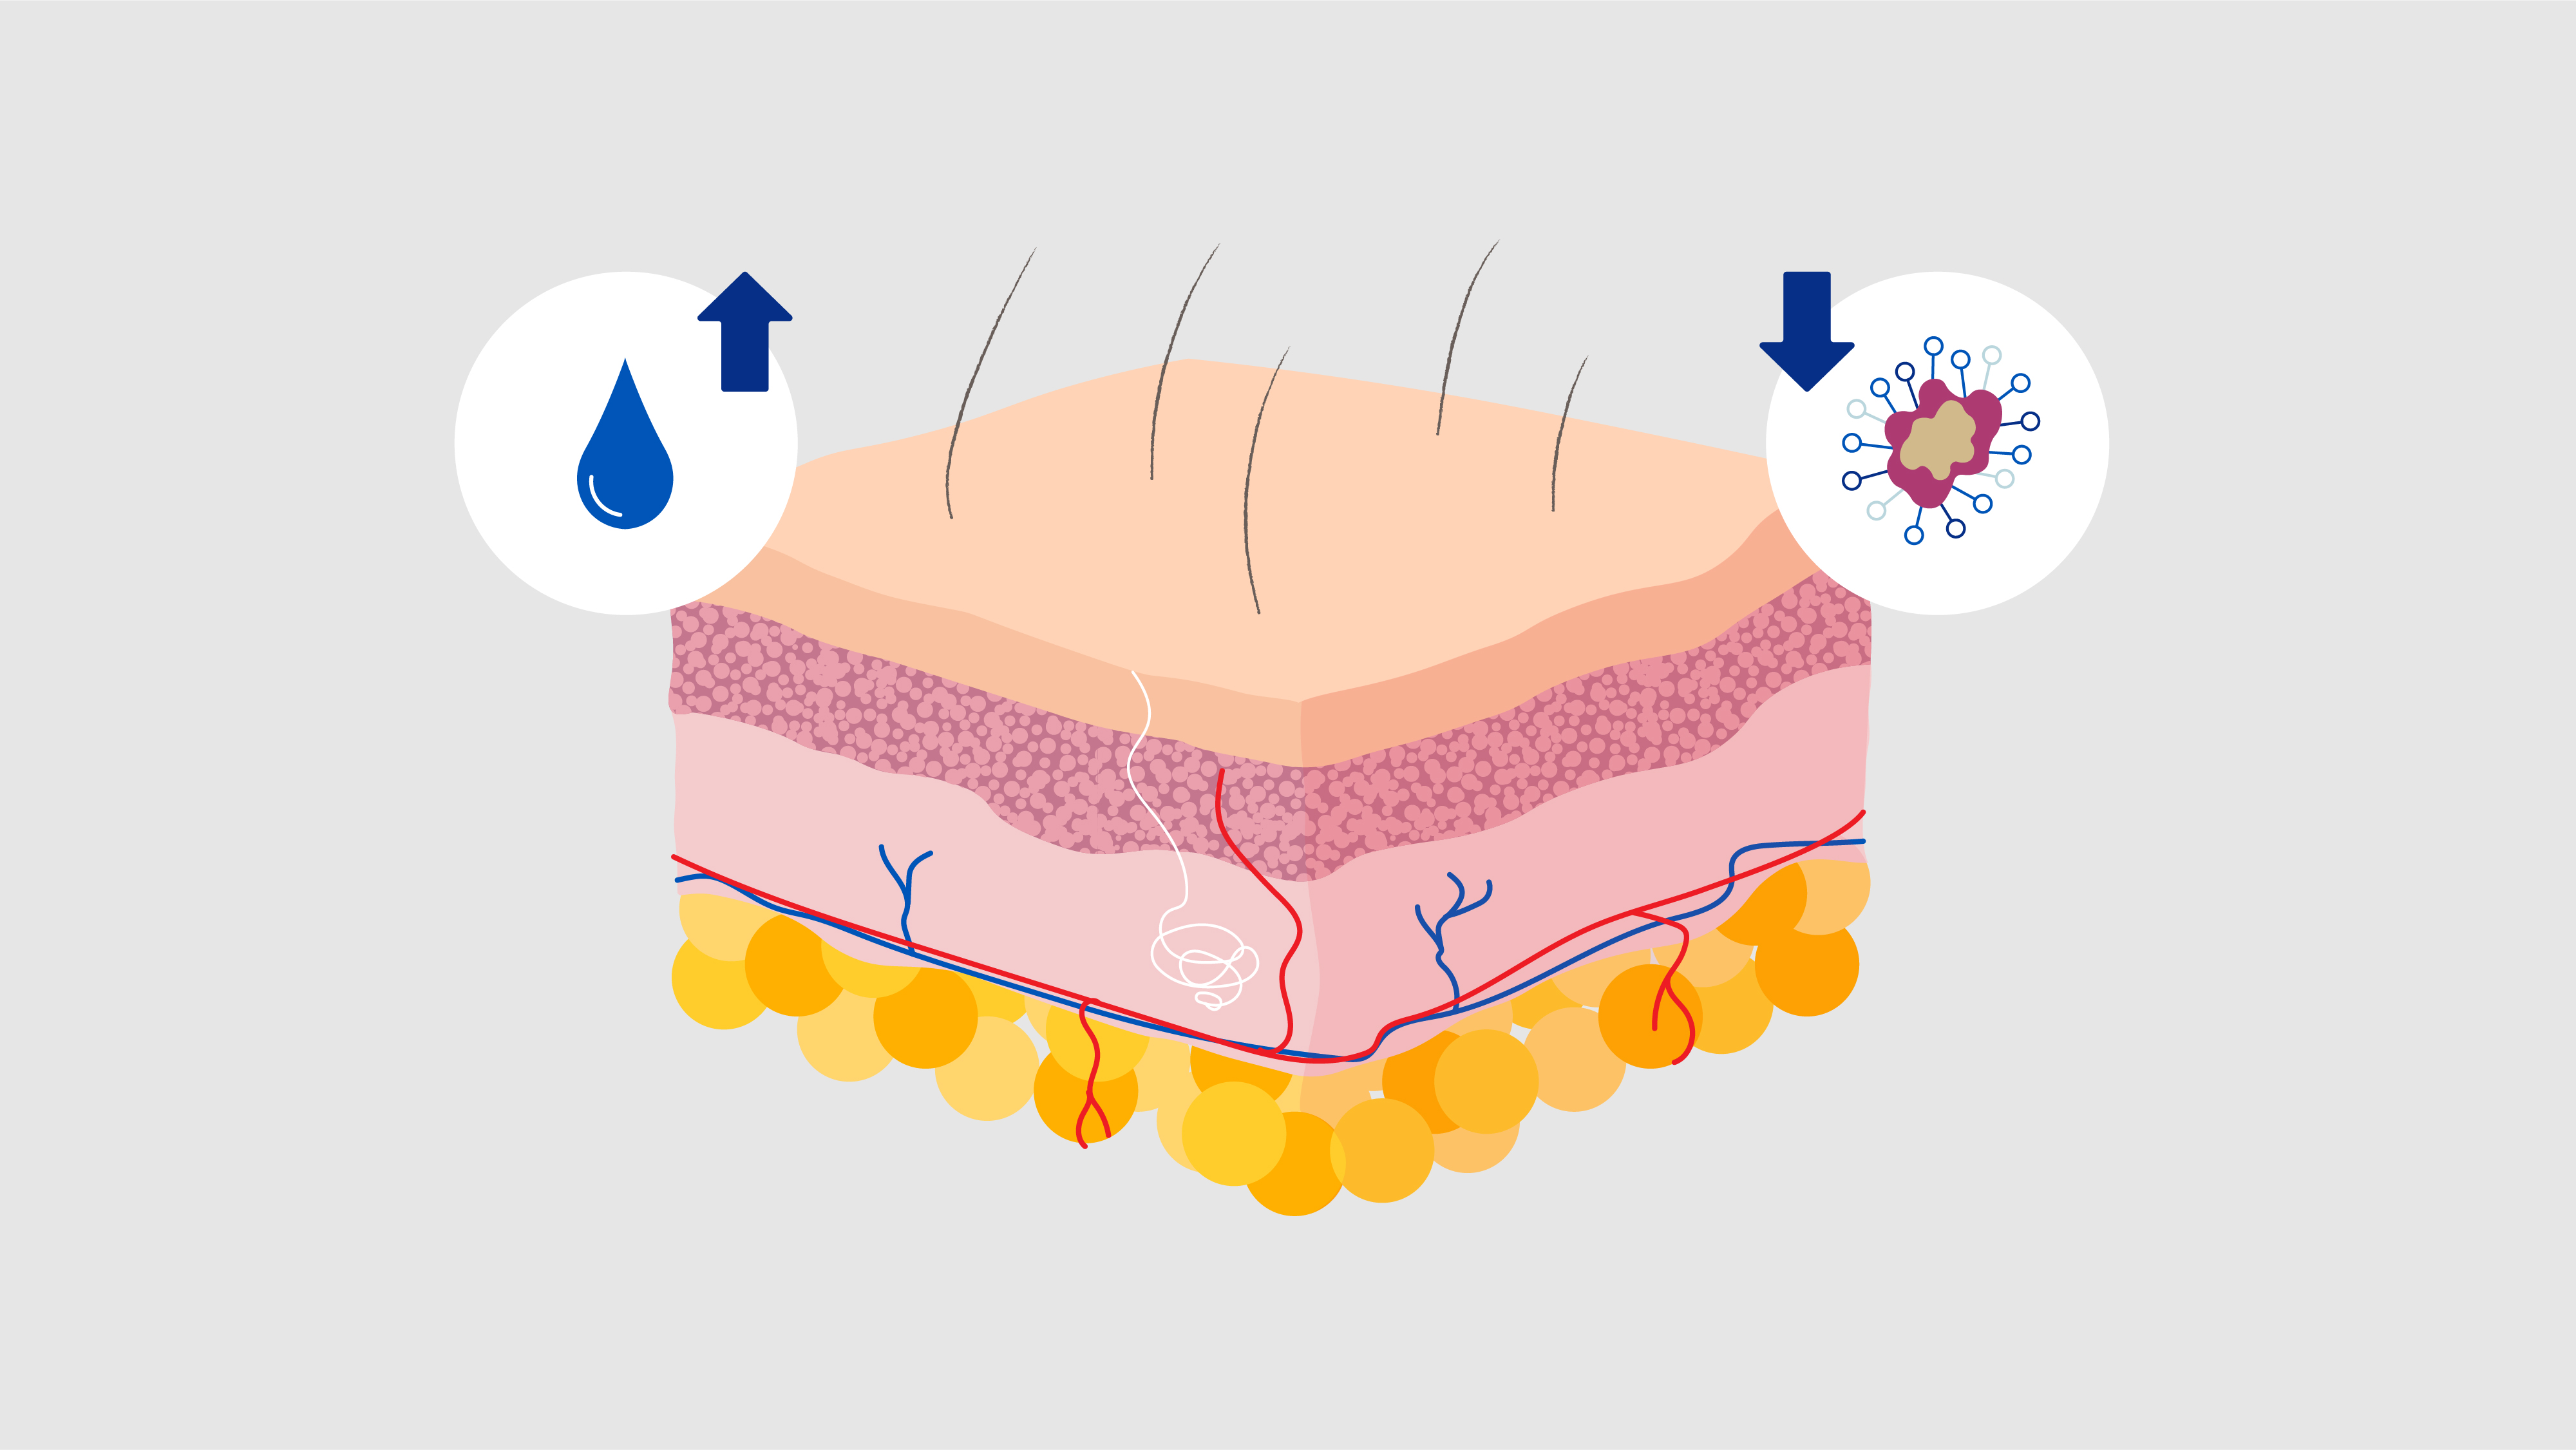 medline restore glove animation layered skin cross section illustration with icons